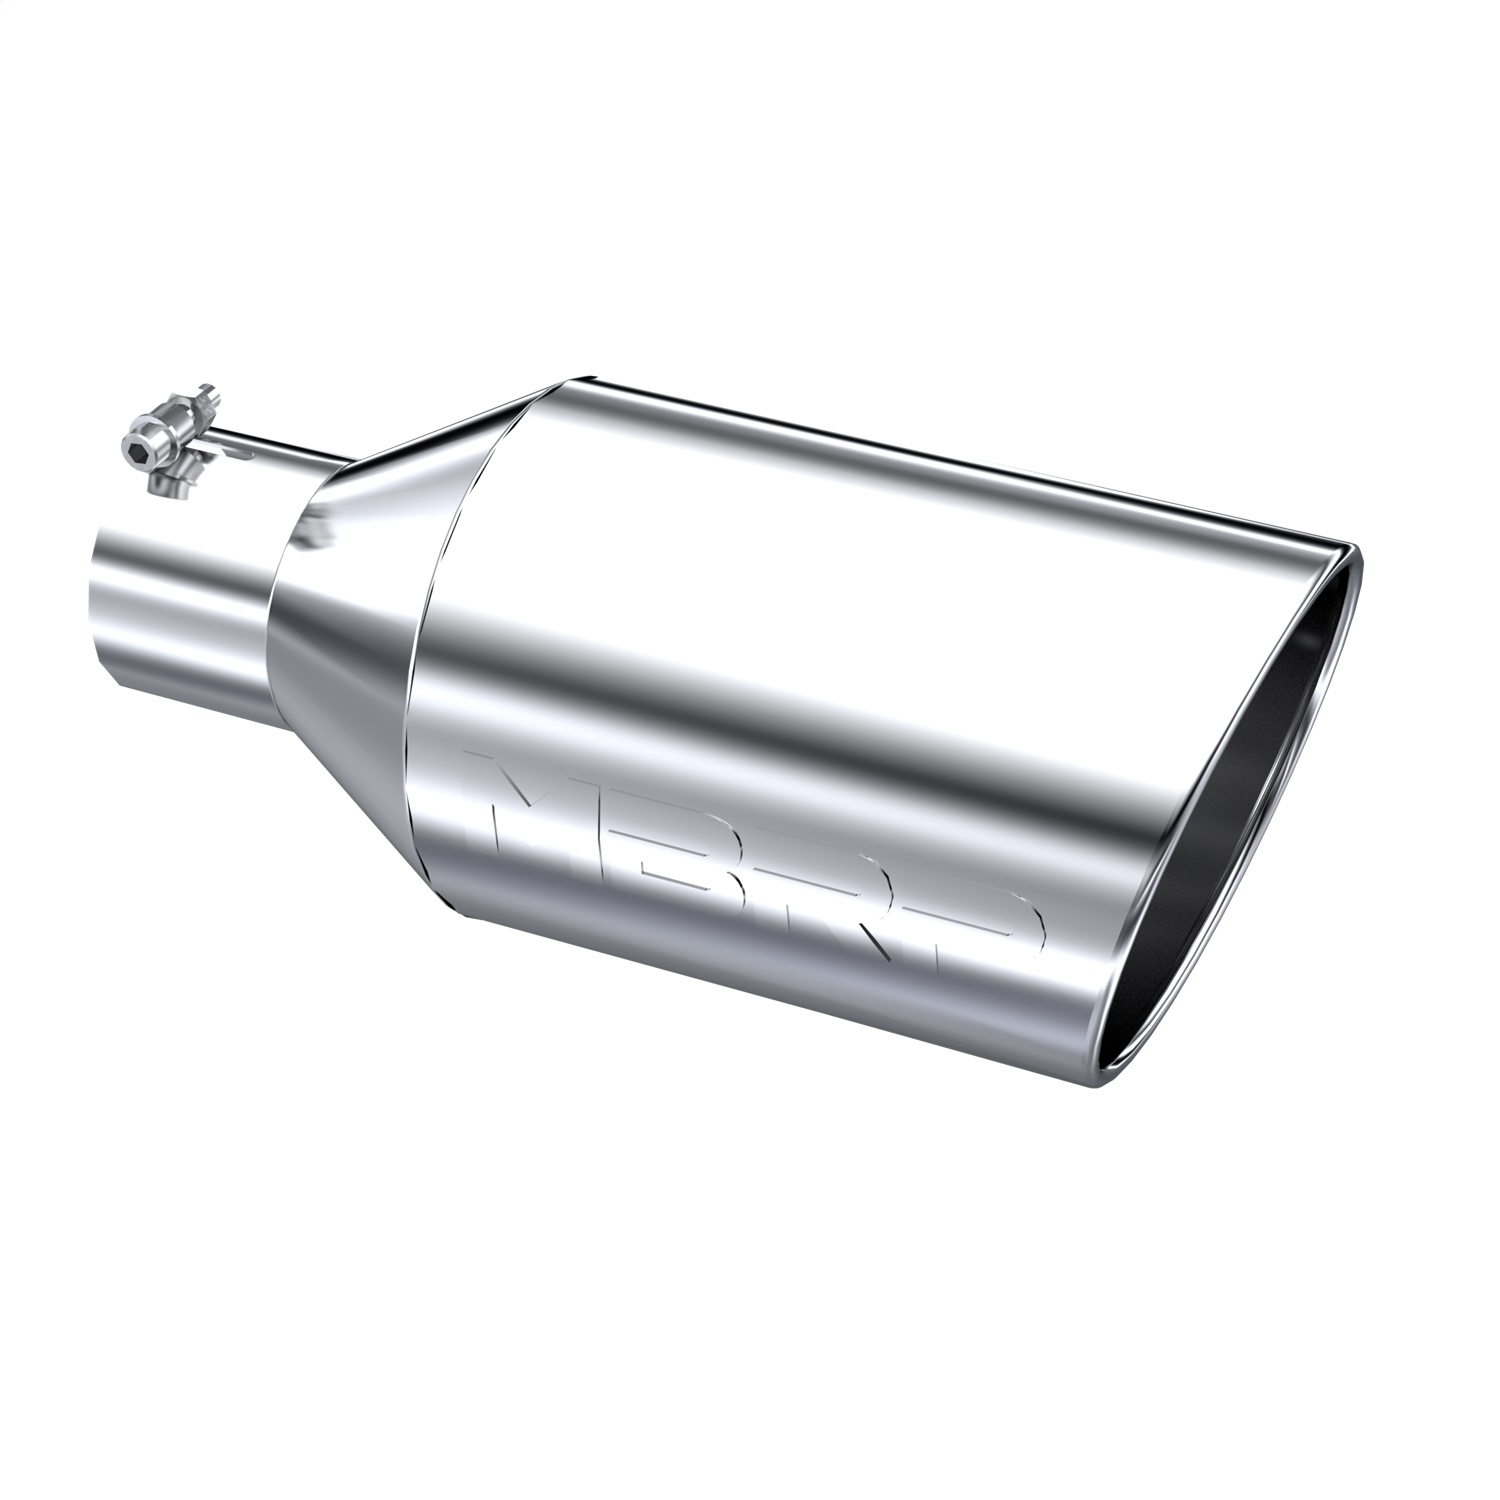 MBRP Exhaust Exhaust Tail Pipe Tip (T5128)